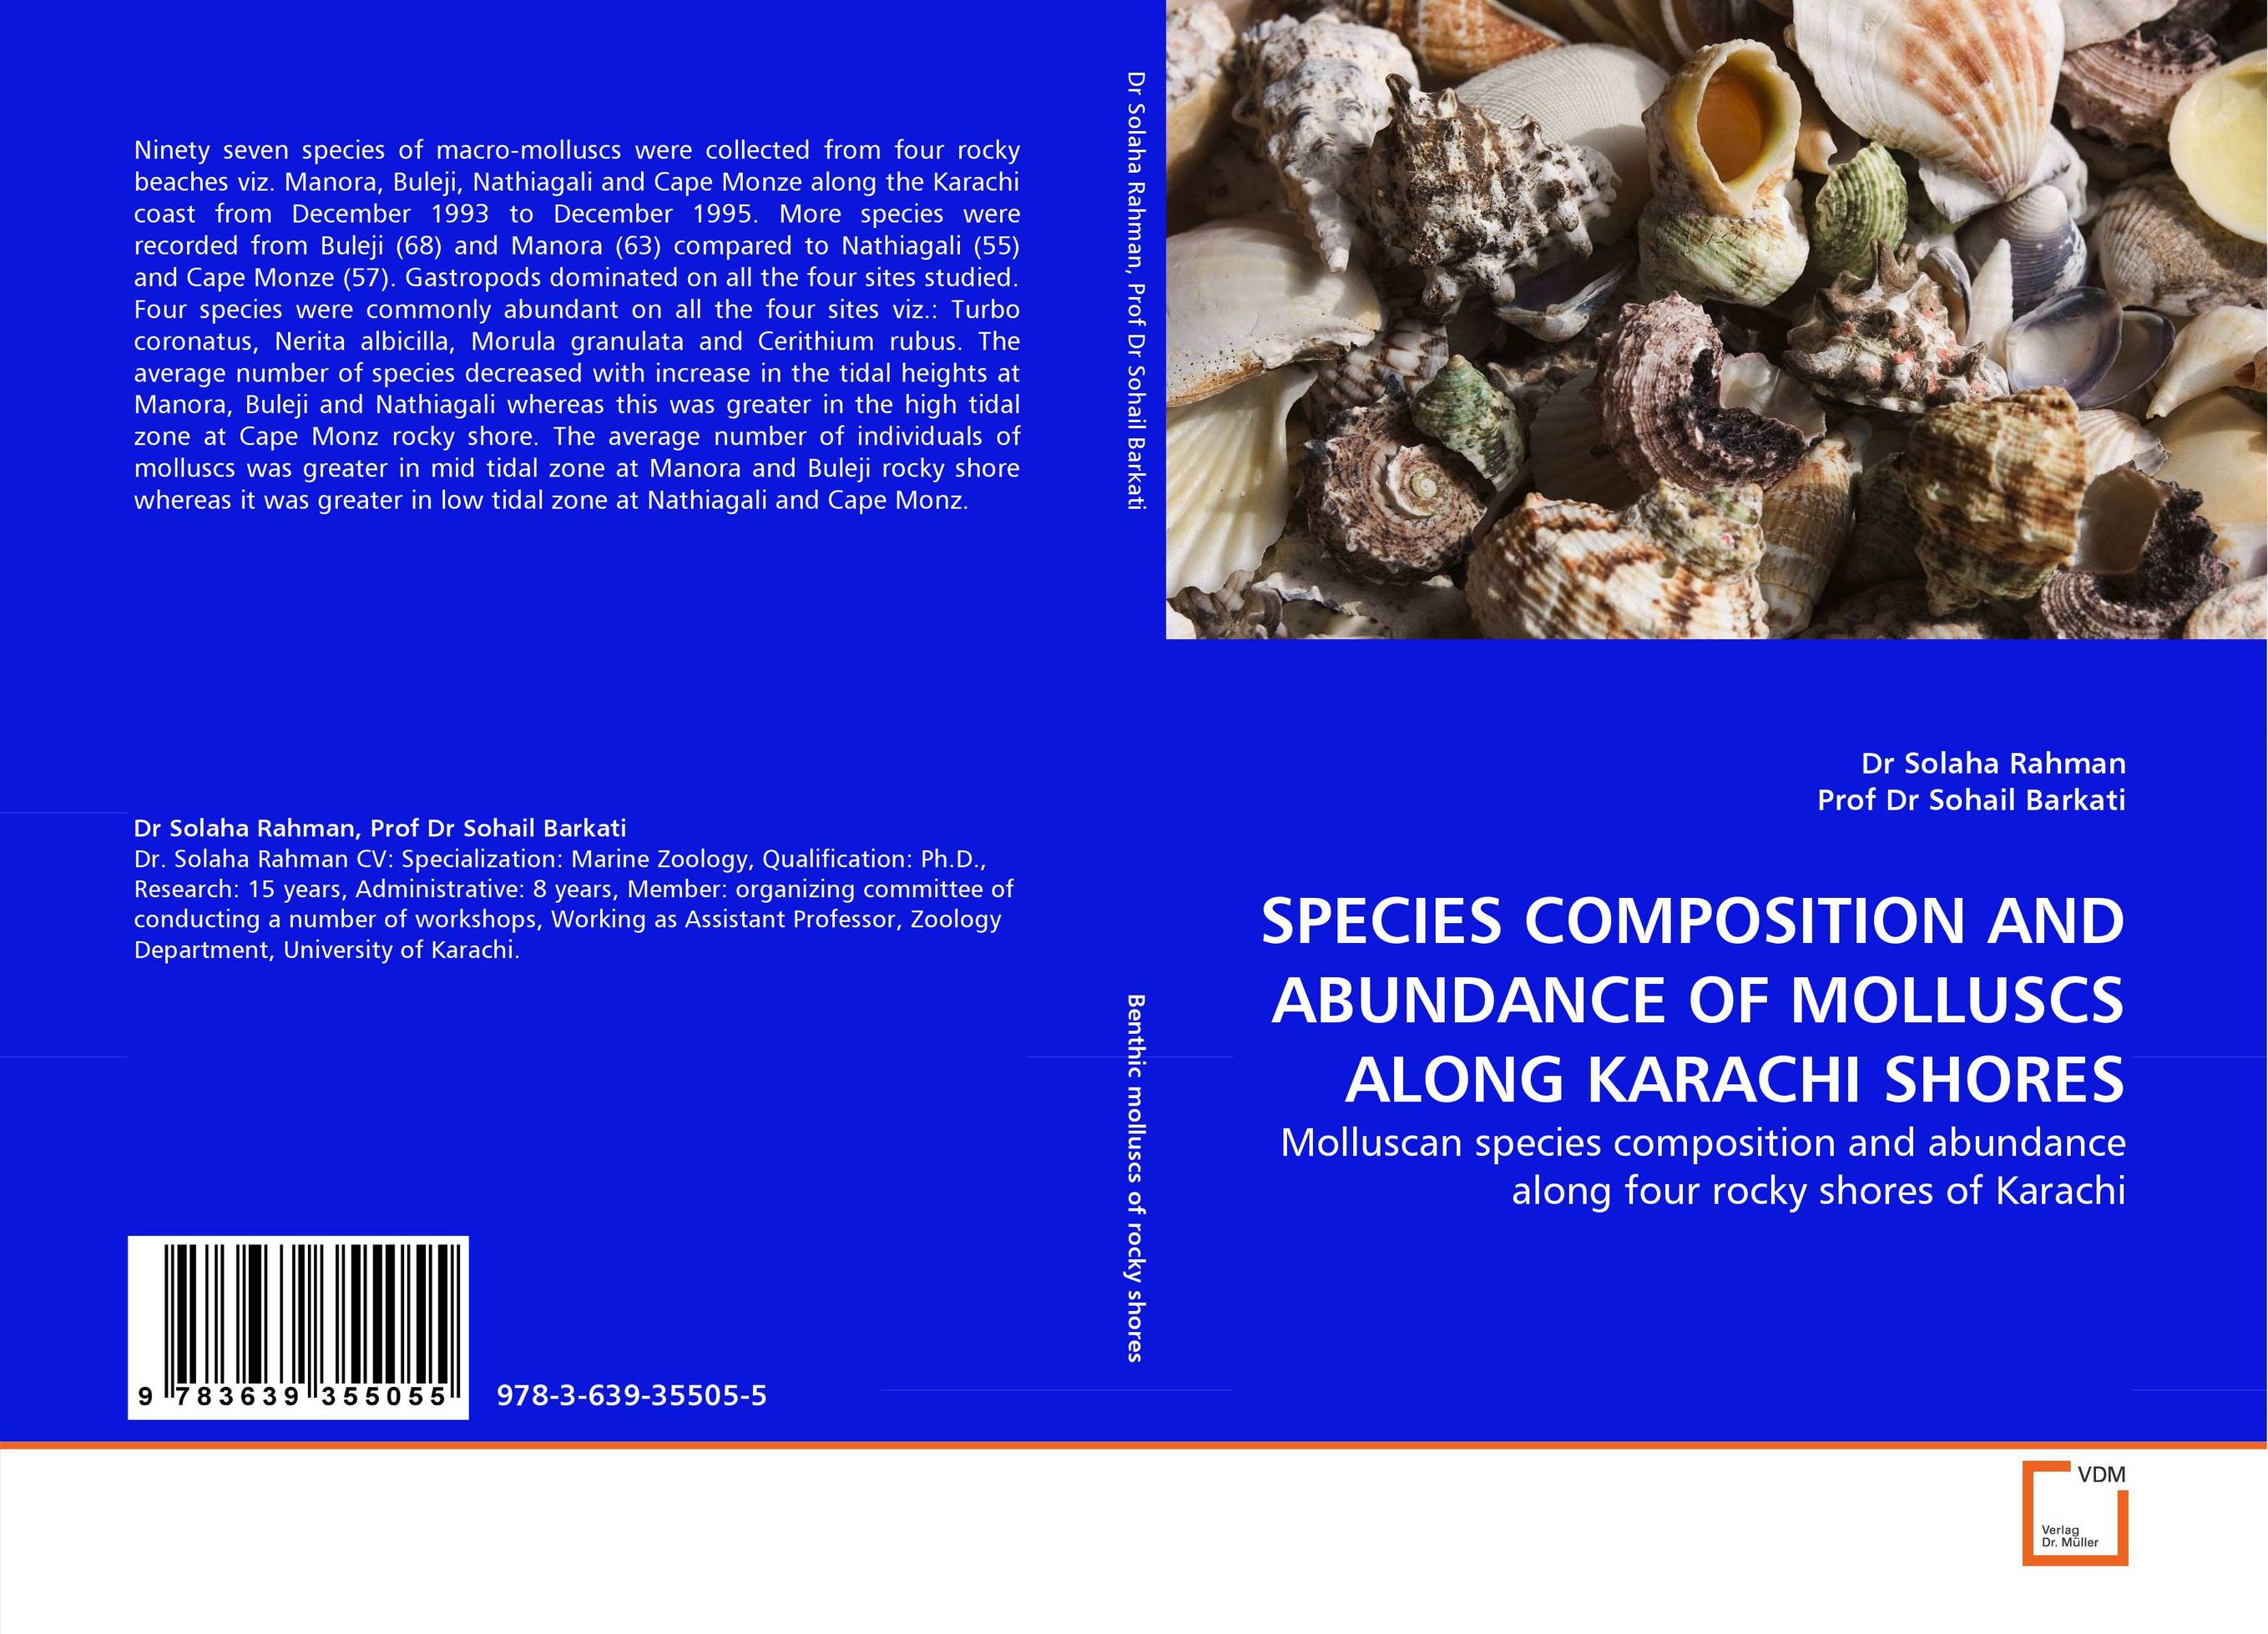 SPECIES COMPOSITION AND ABUNDANCE OF MOLLUSCS ALONG KARACHI SHORES